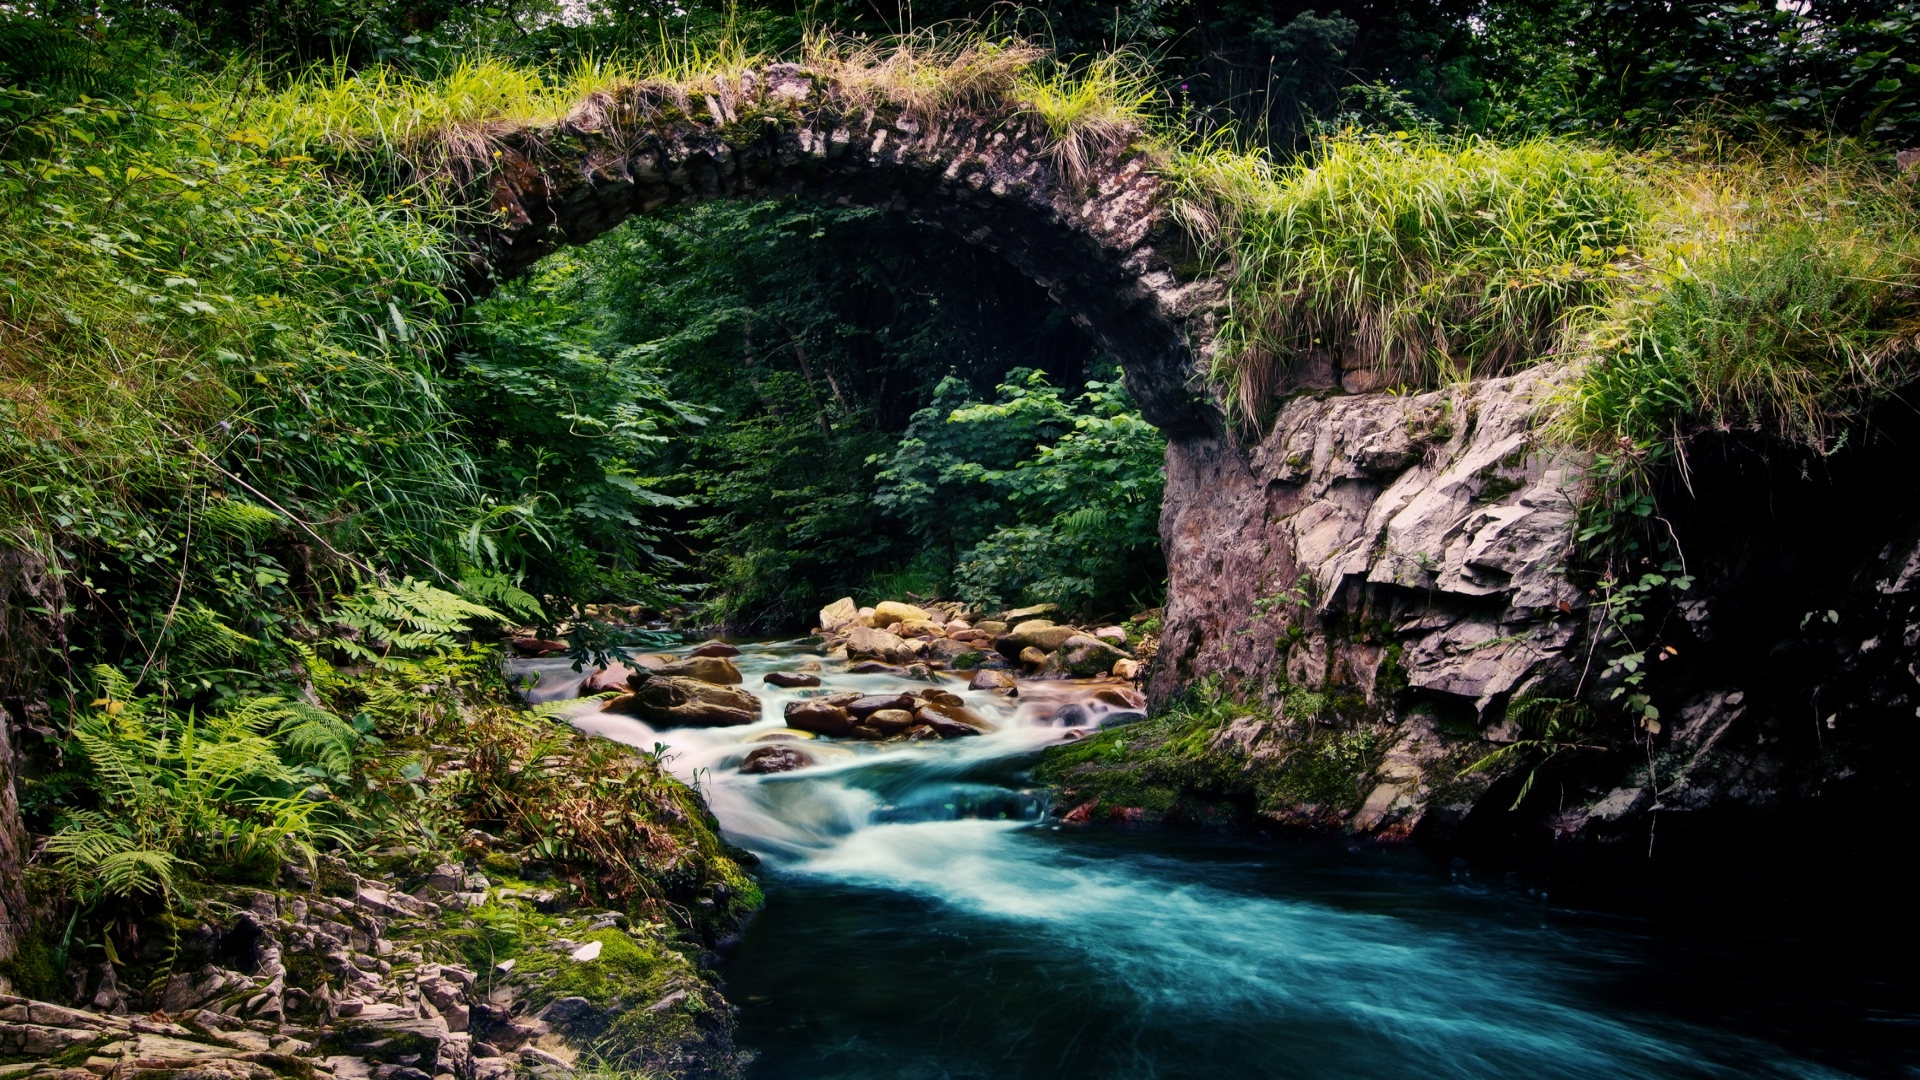 Stone Bridge Hd Wallpaper Wide Screen Wallpaper 1080p 2k 4k